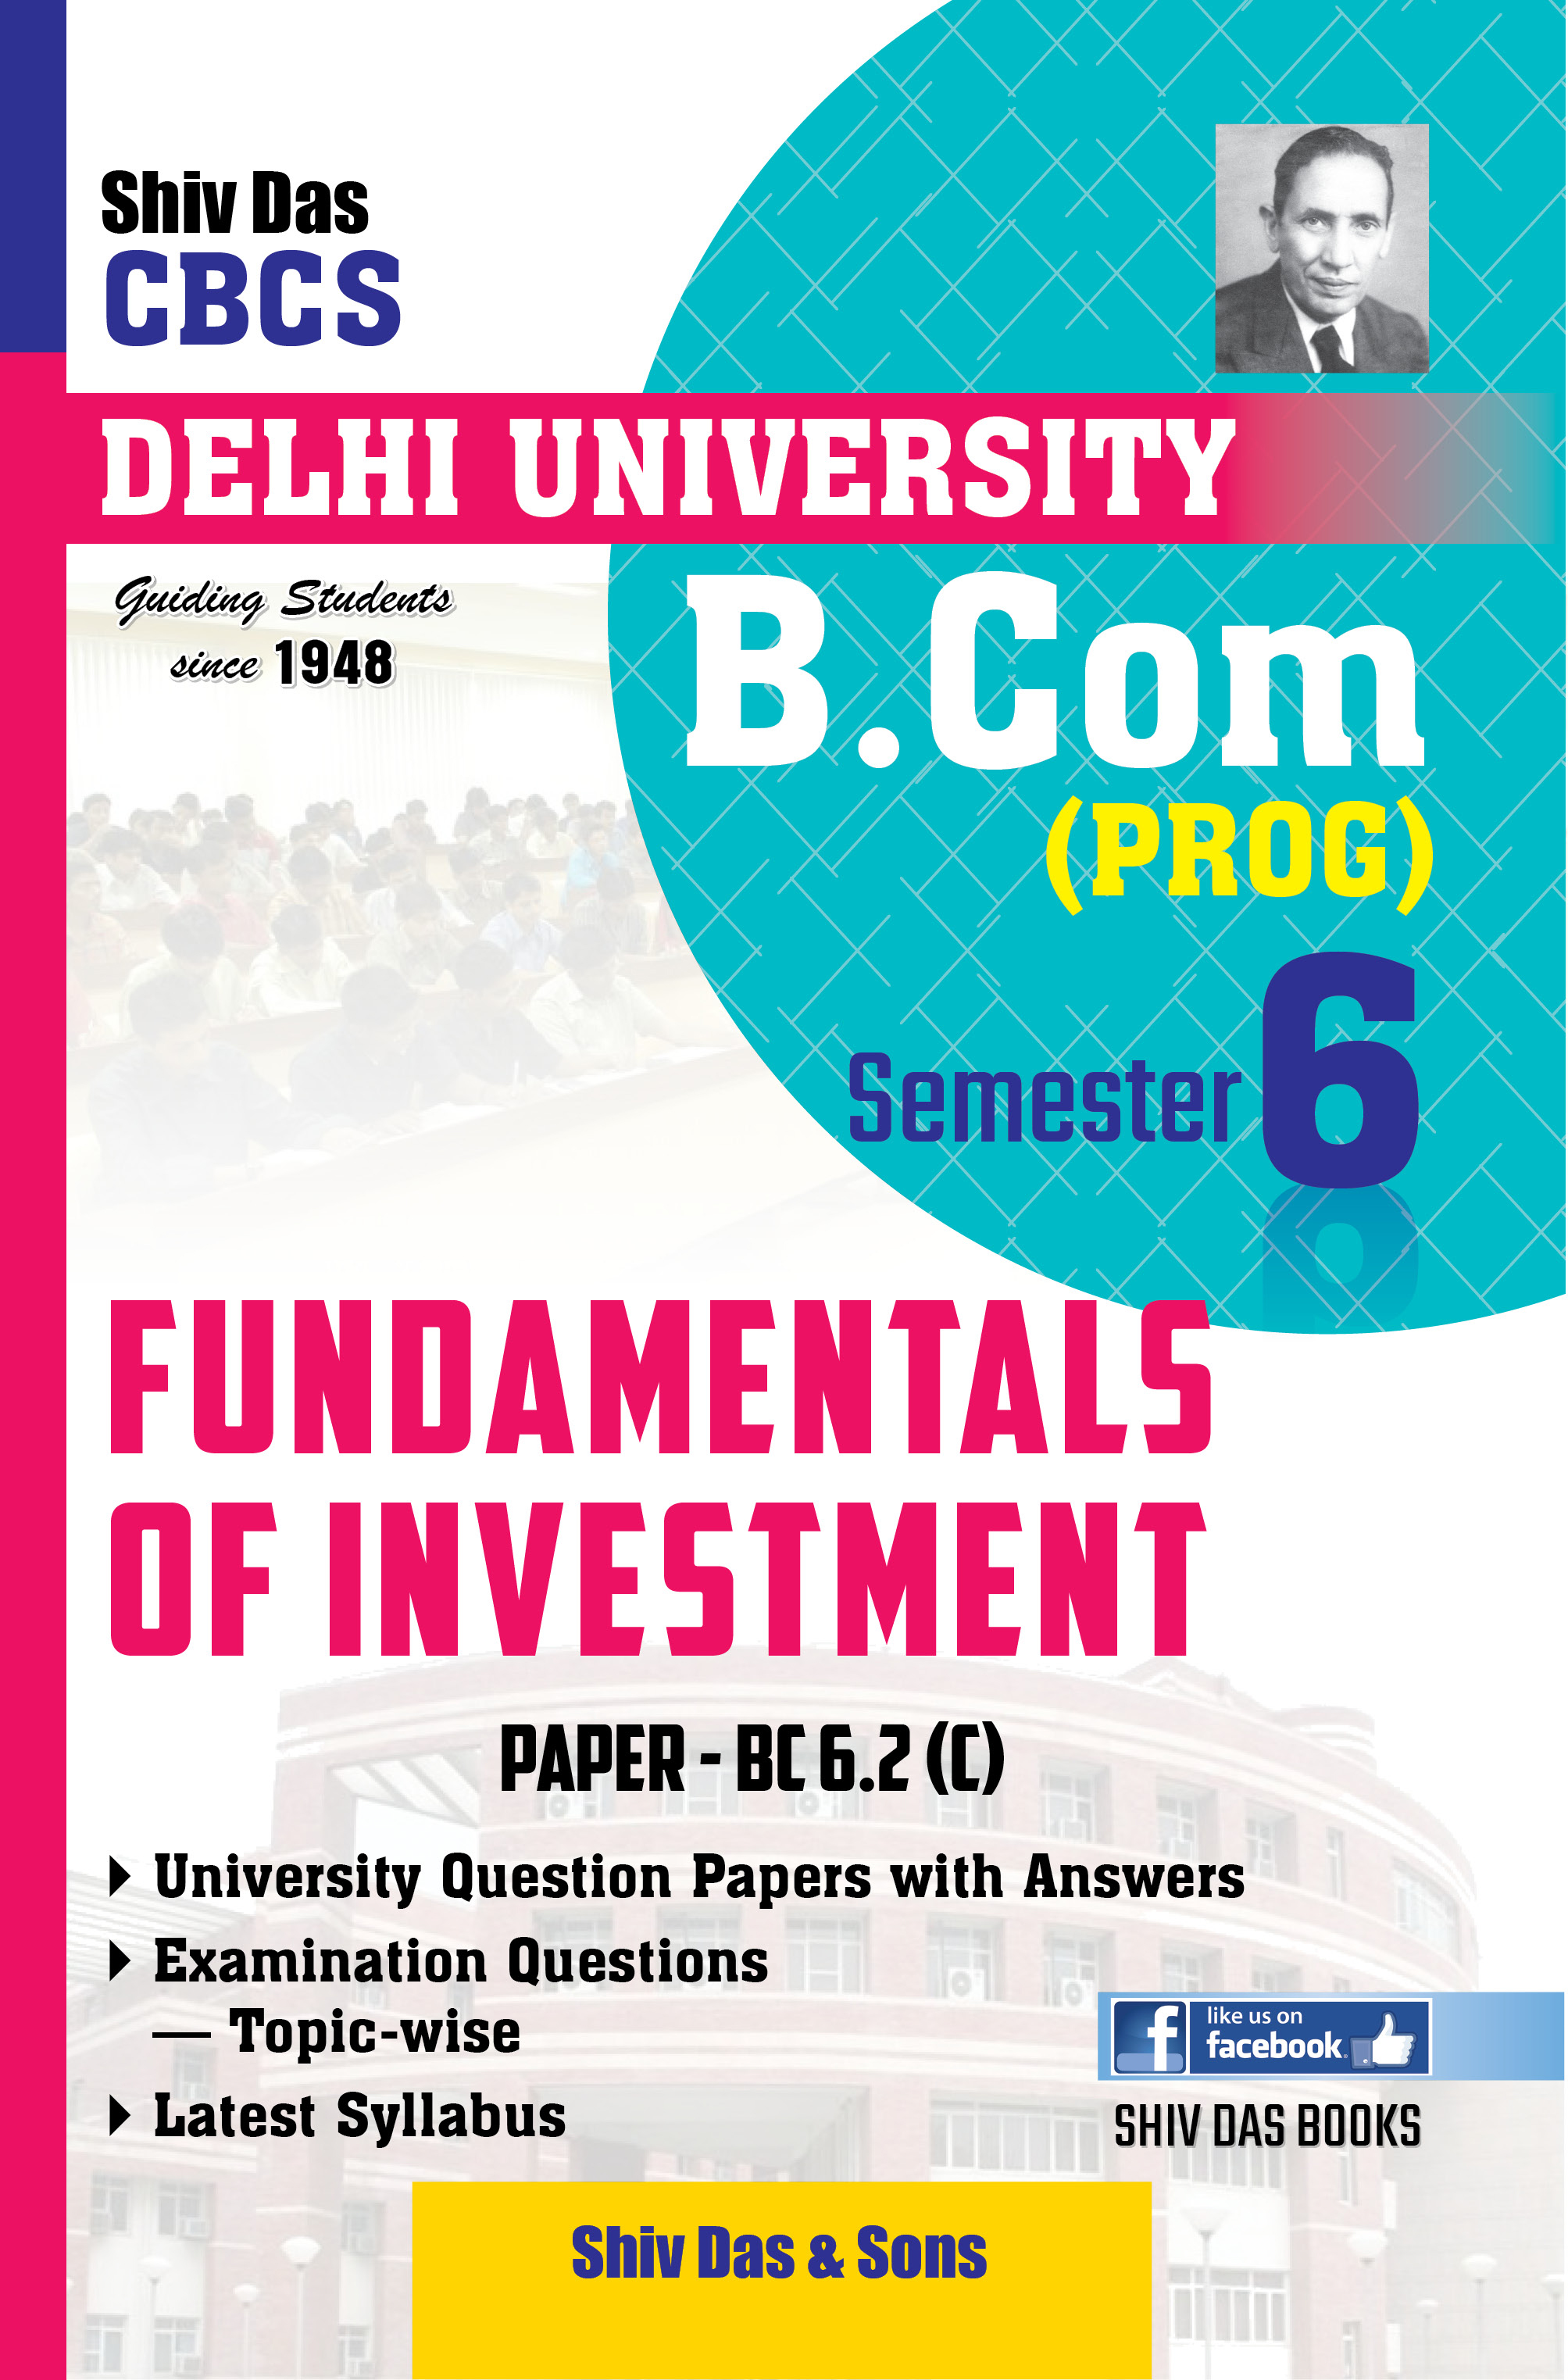 Fundamentals of Investment for B.Com Prog Semester-6